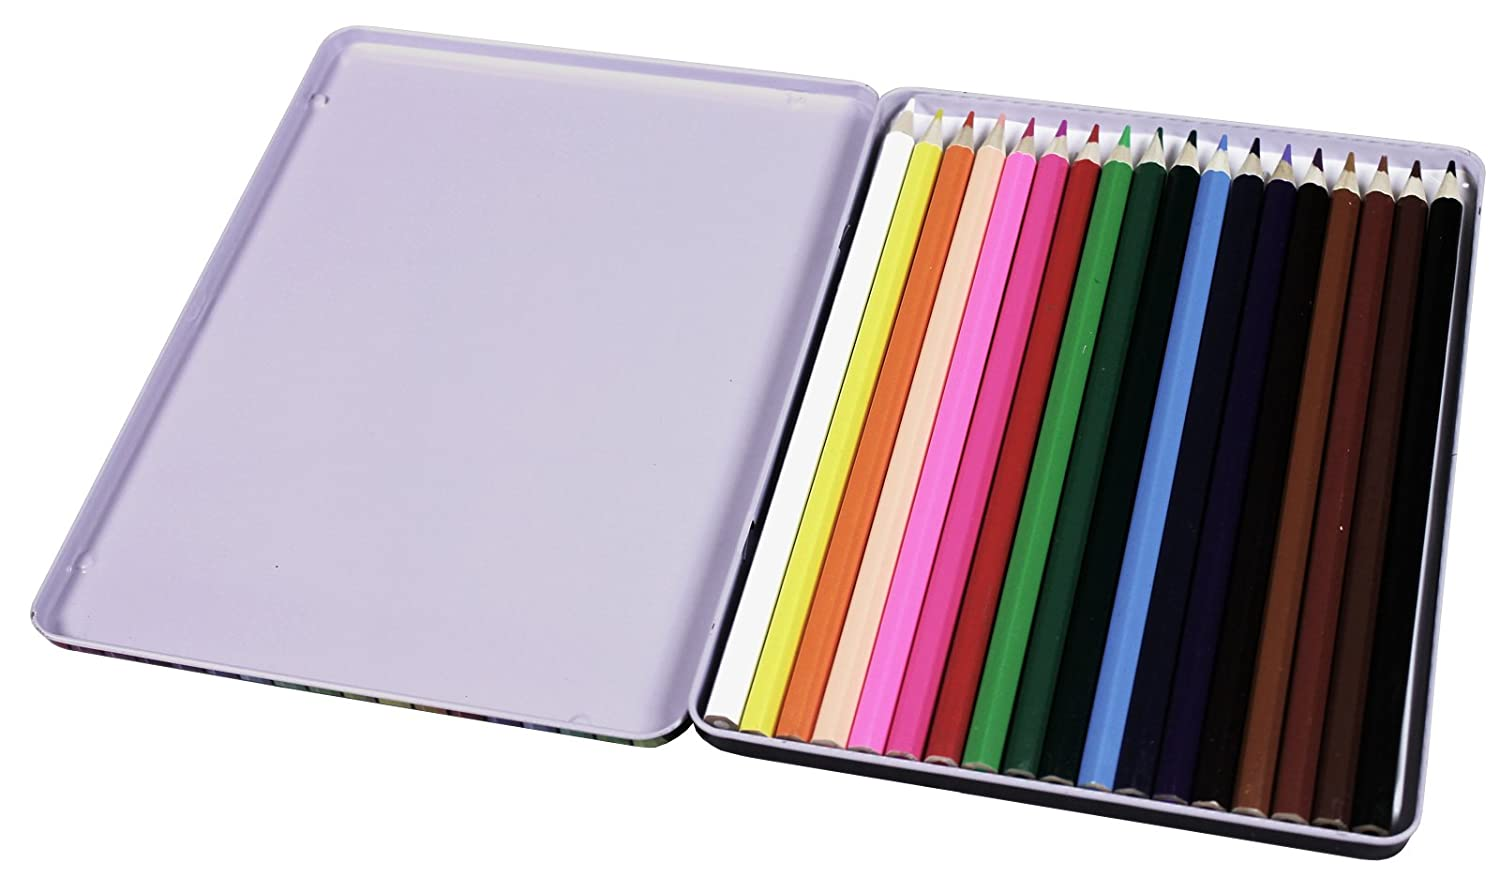 2XCOLOUR Therapy 18 Professional Pencil Crayons in TIN BX